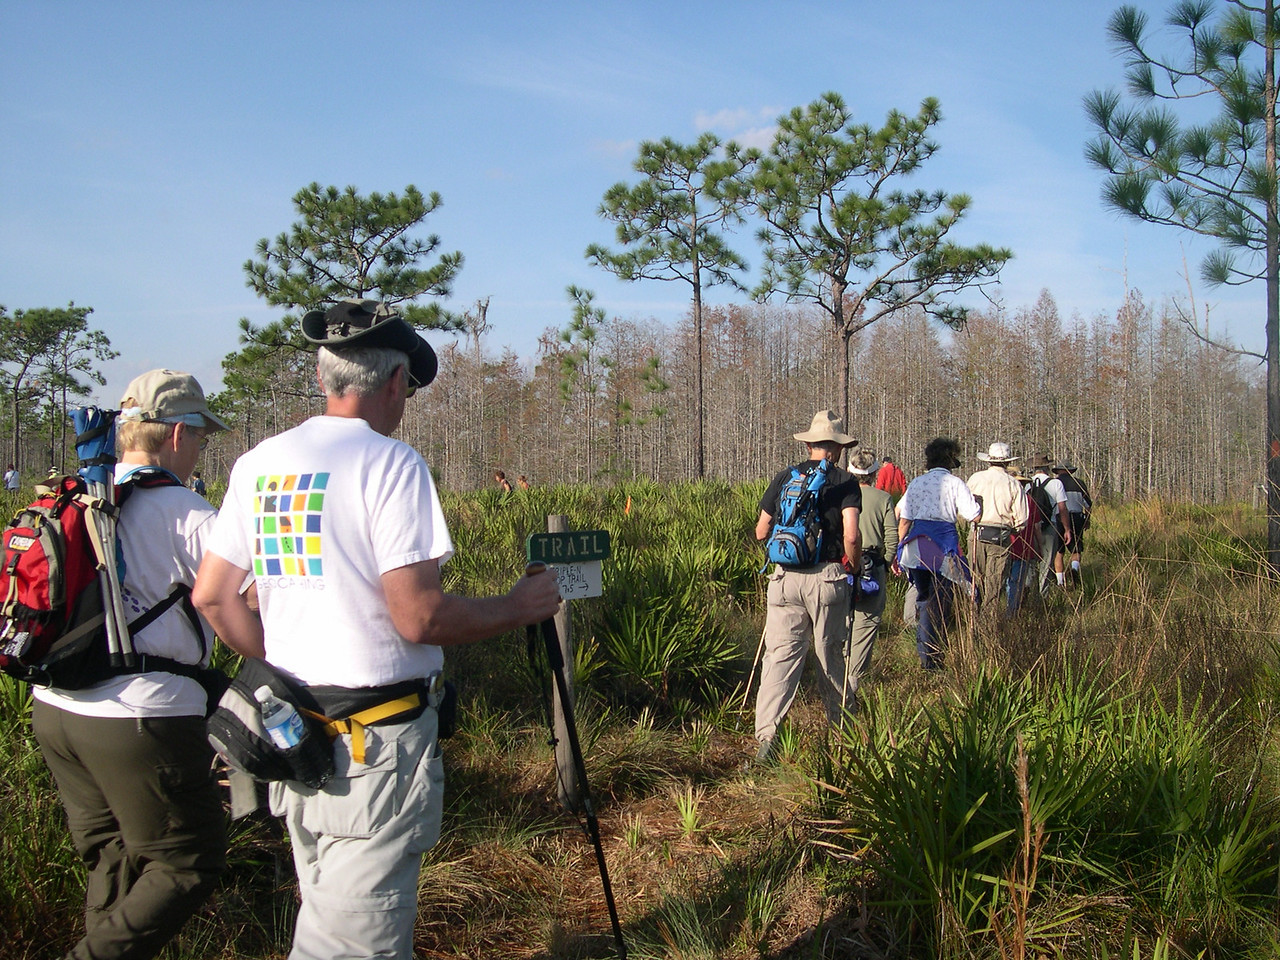 Hiking the loop at Triple N Ranch in Holopaw<br /> PHOTO CREDIT: Susan Young / Florida Trail Association